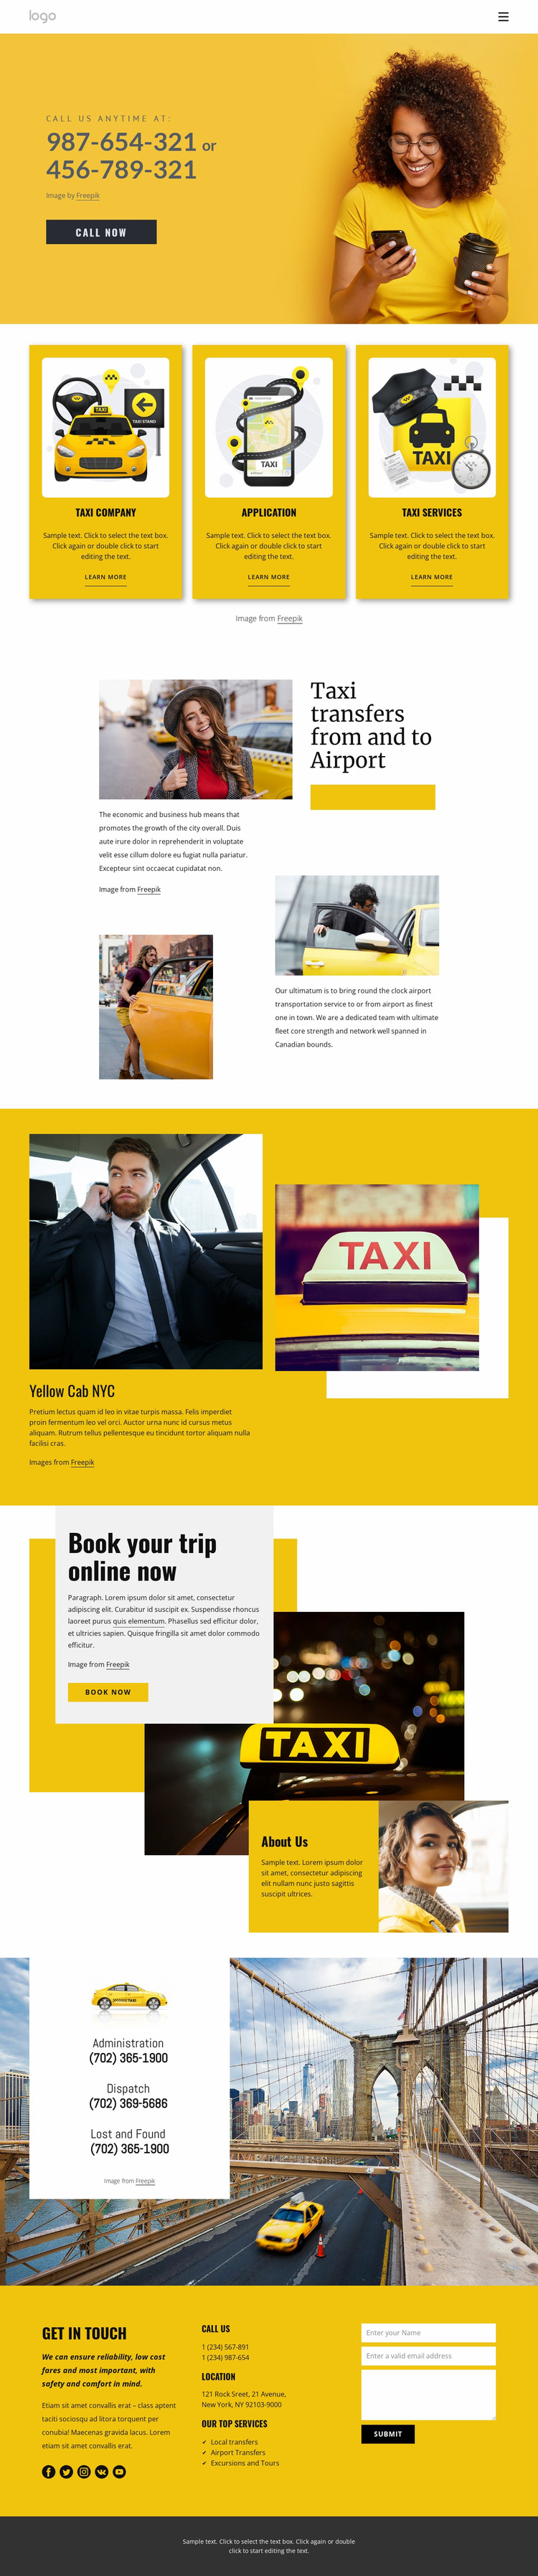 Quality taxi service Website Mockup